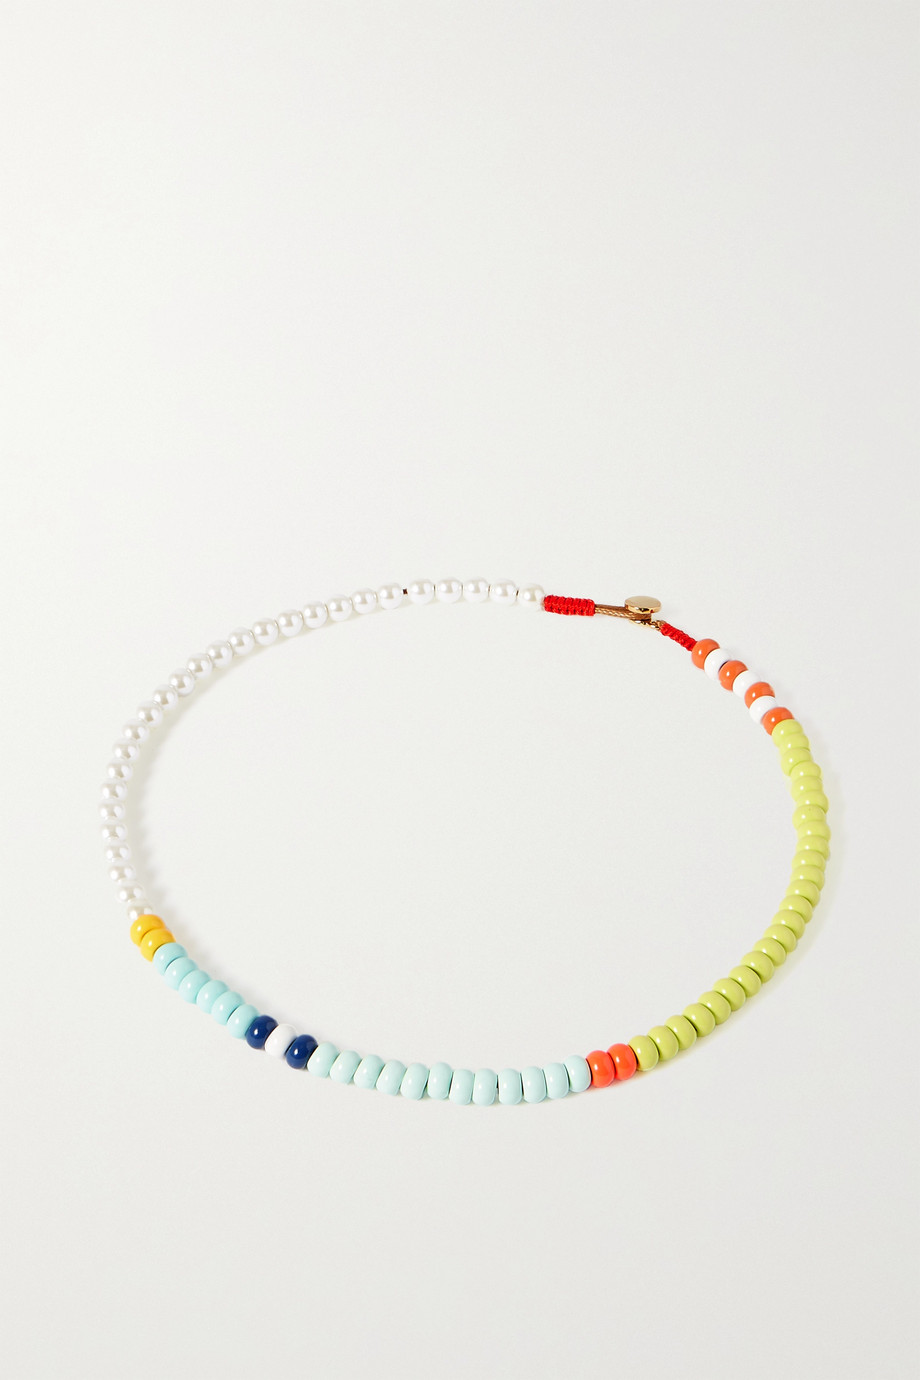 ROXANNE ASSOULIN Loopy enamel and faux pearl necklace